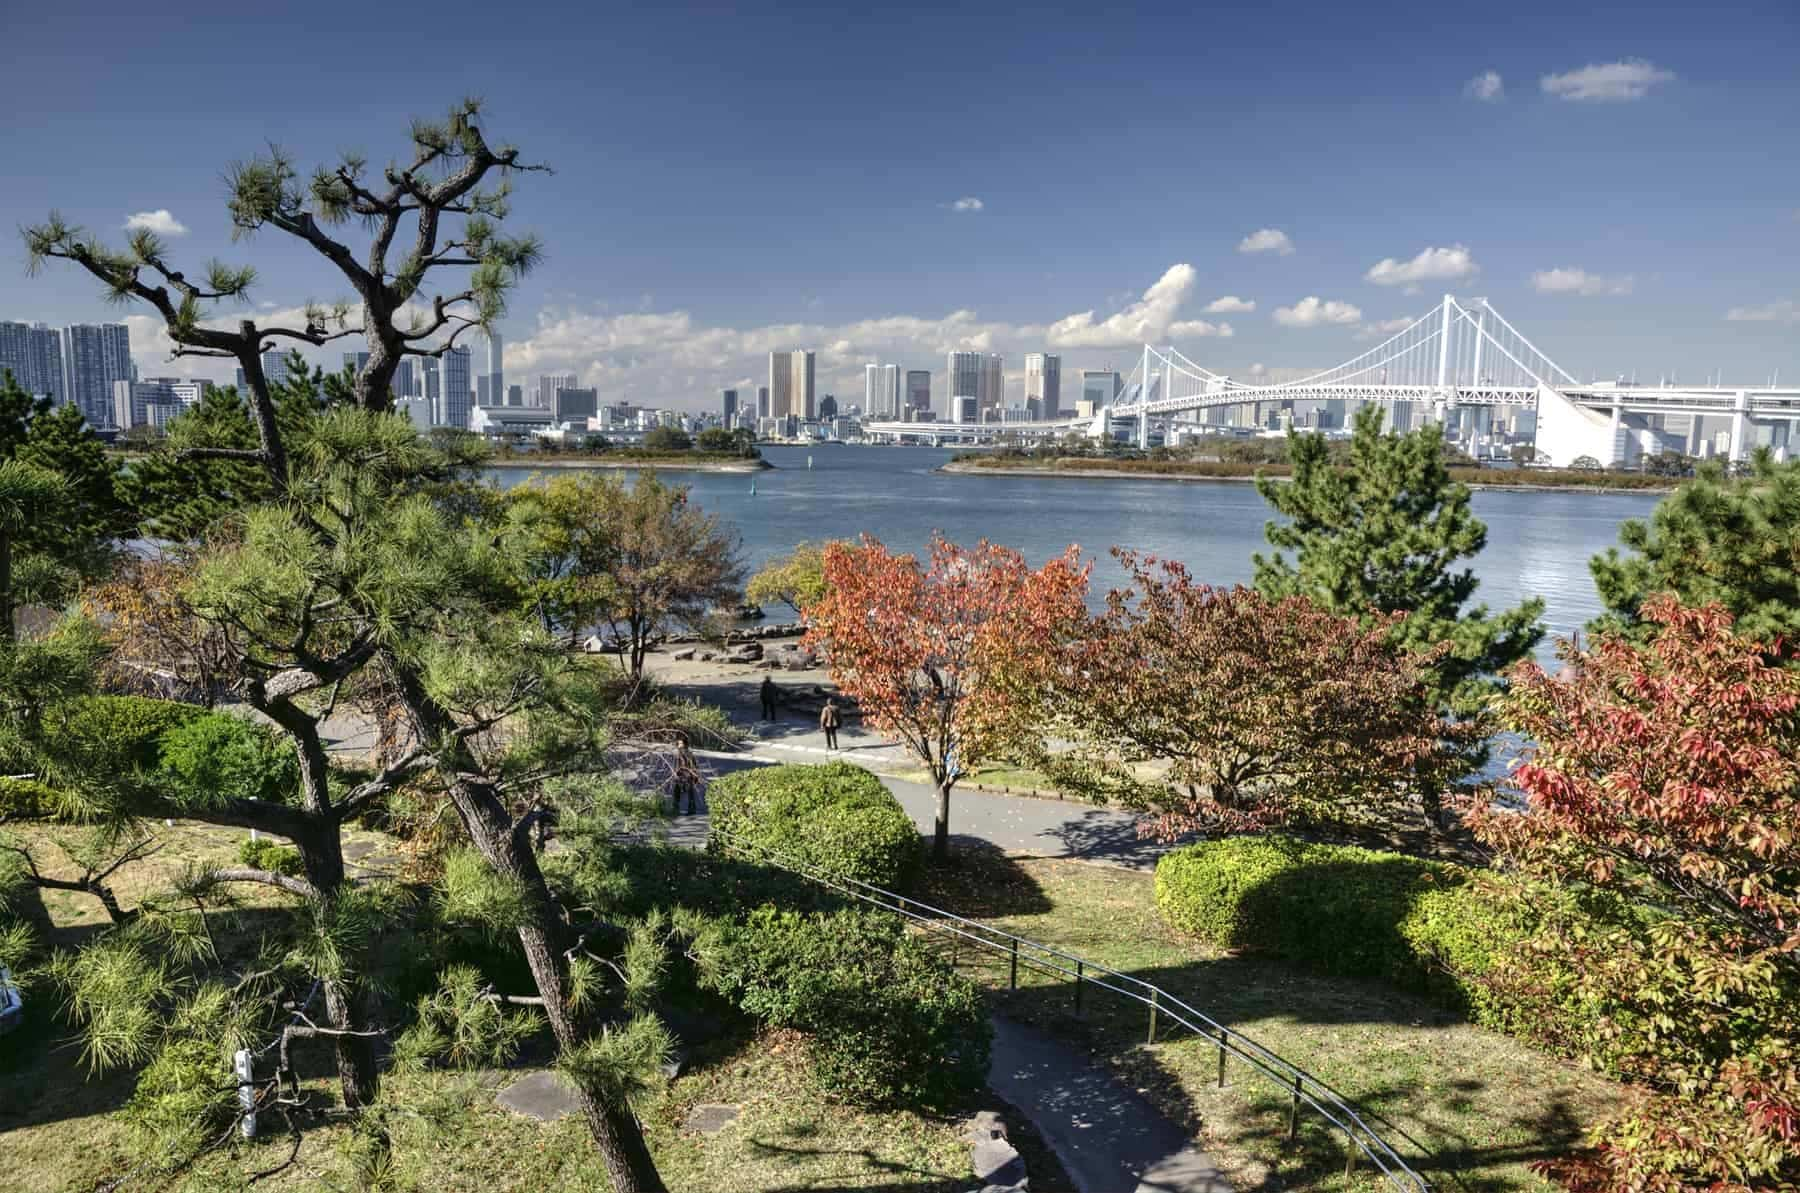 Autumn in hidden park in Tokyo Bay Japan with view on skyscrapers and bridge on background during nice sunny day.